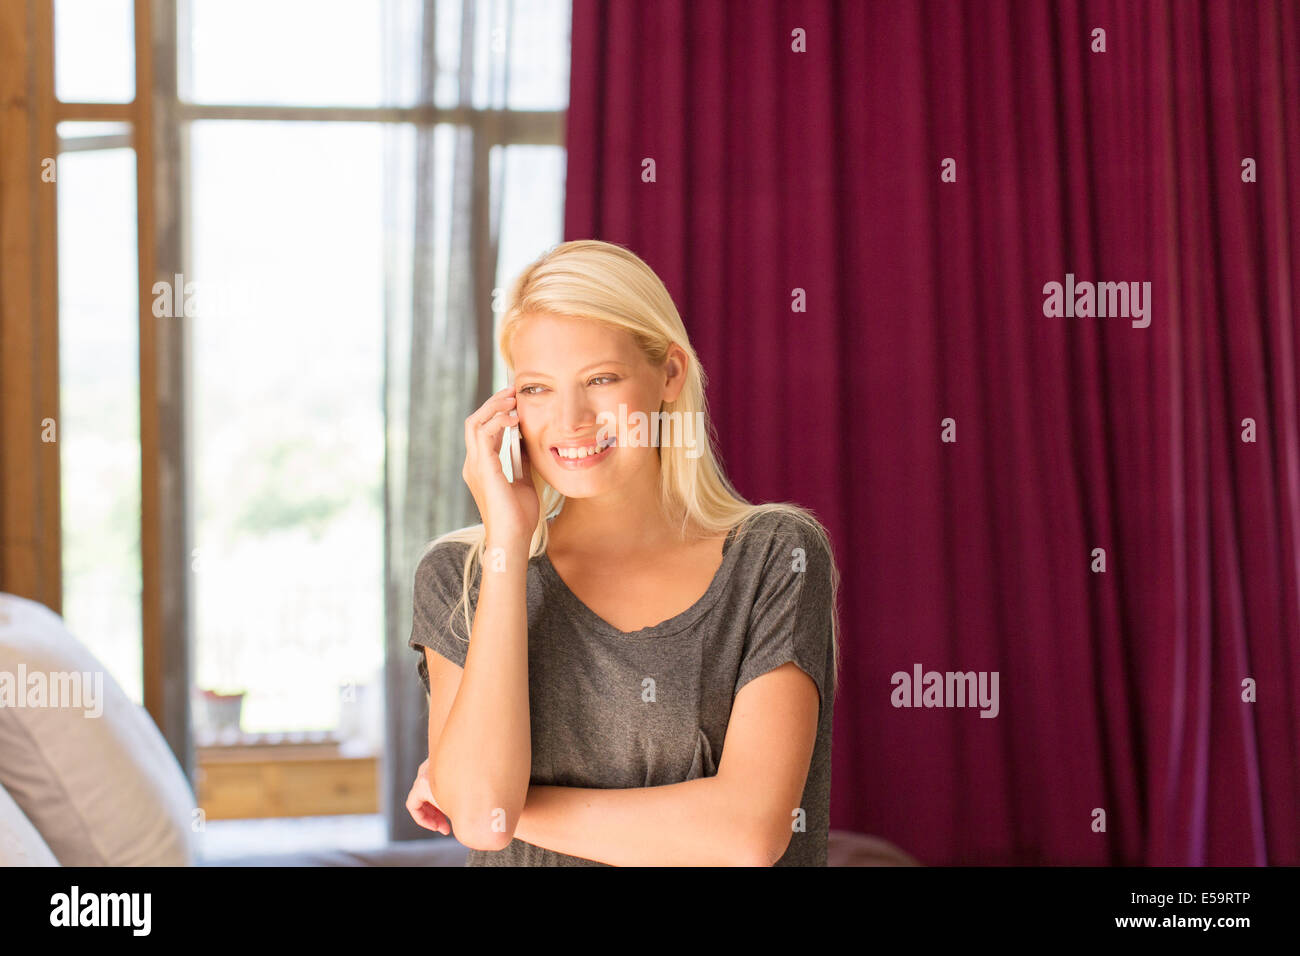 Woman talking on cell phone in bedroom - Stock Image